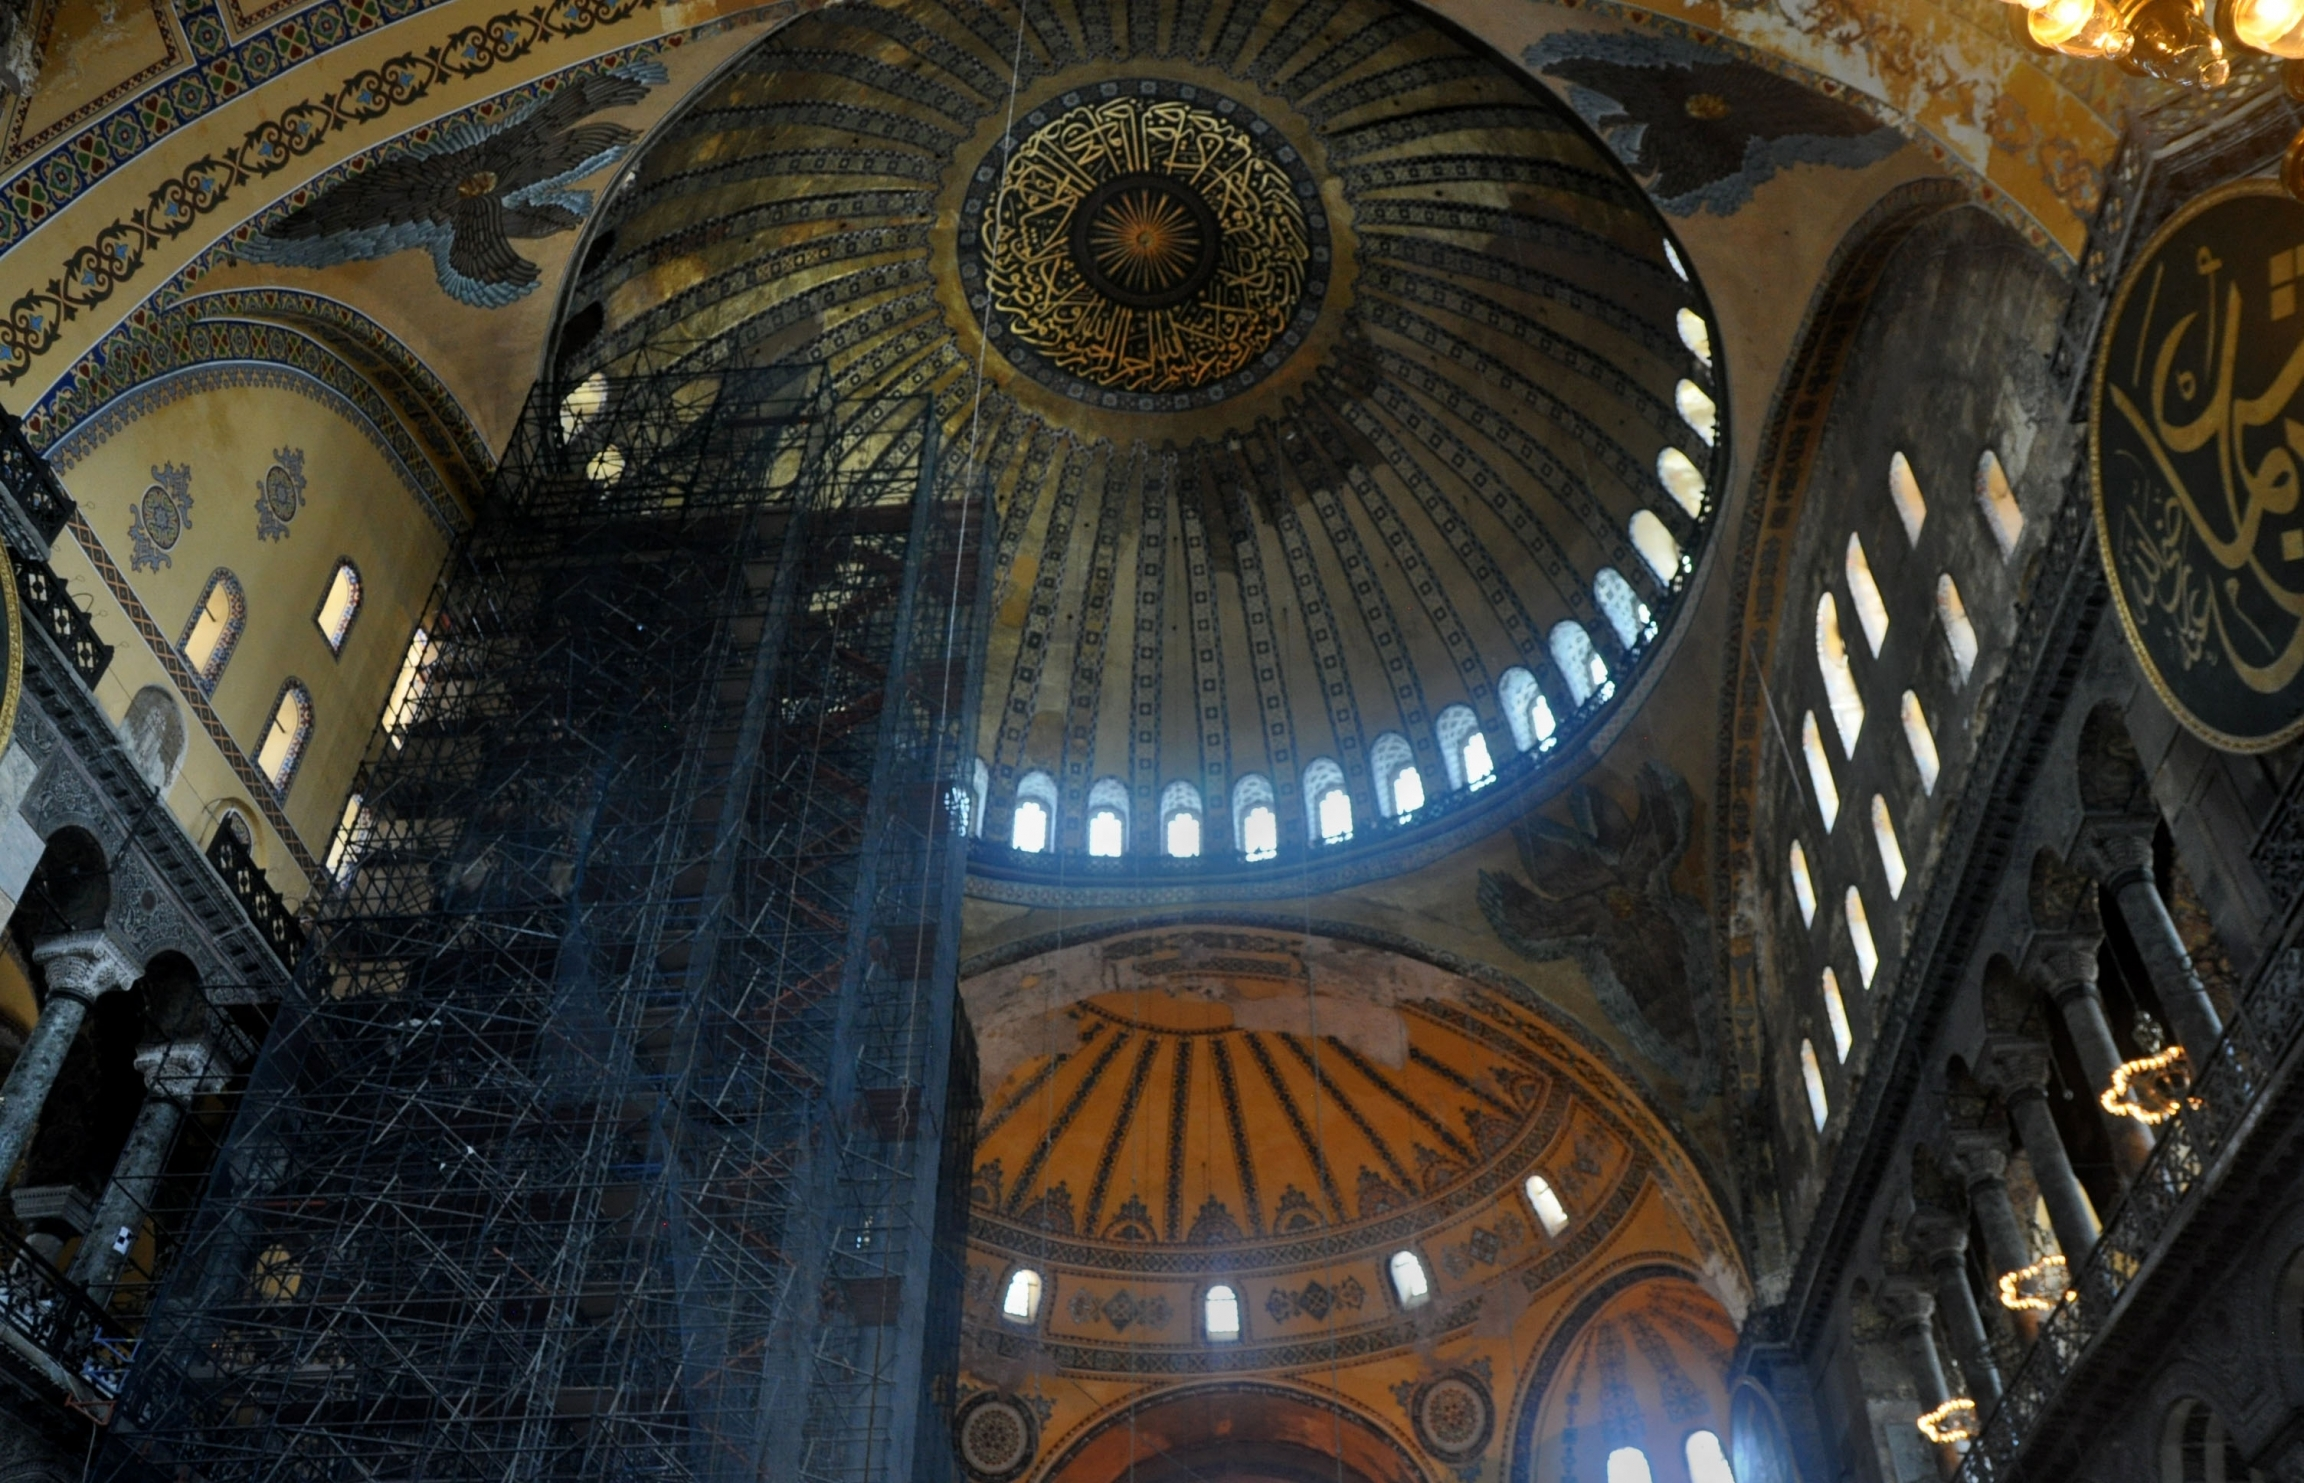 The majestic dome of the Haghia Sophia with scaffolding for repairs